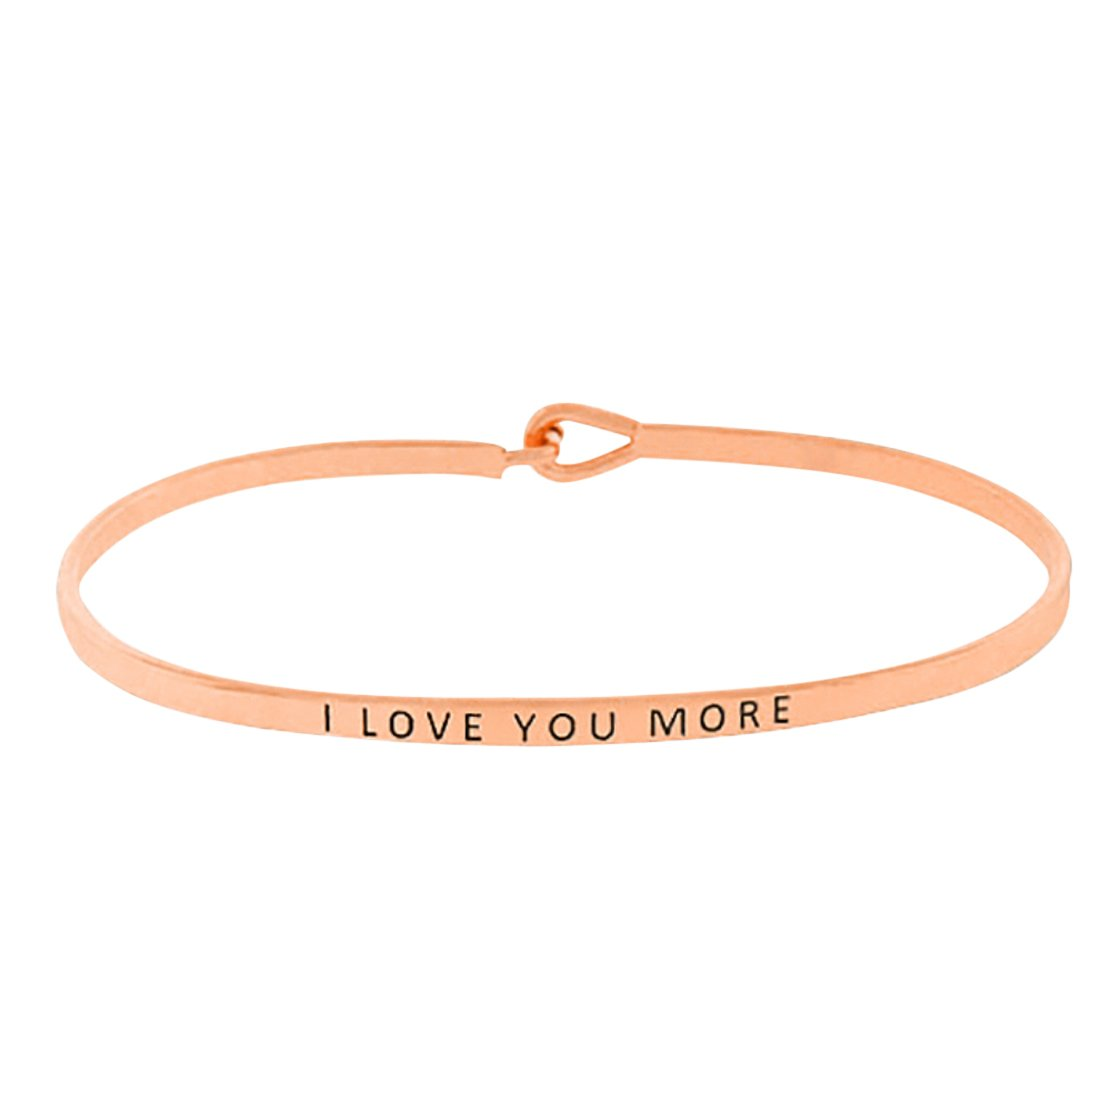 Rosemarie Collections Womens Thin Hook Bangle Bracelet I Love You More